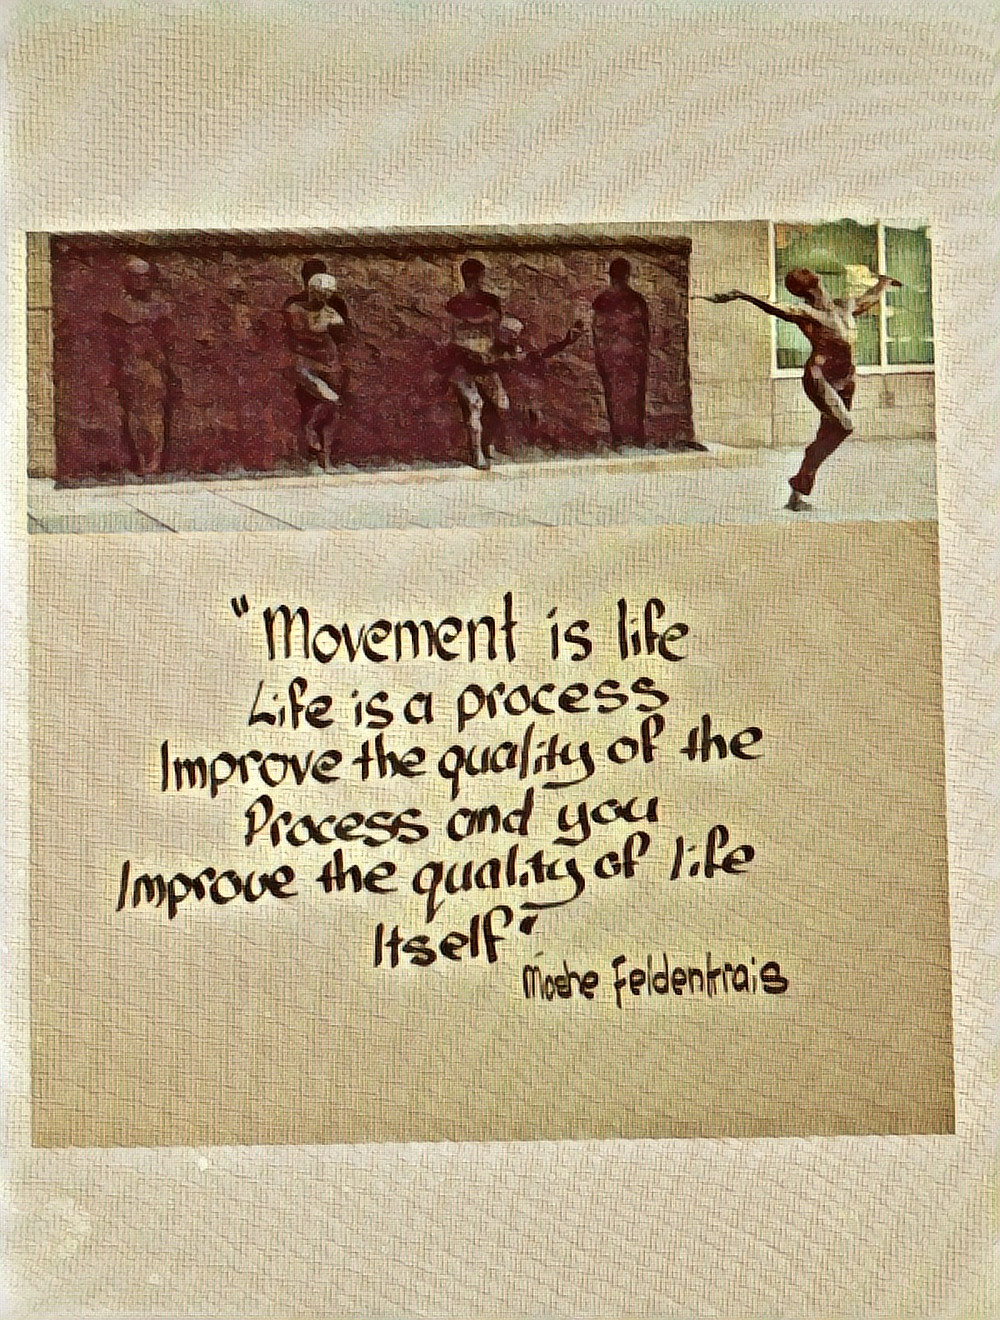 A quote by Moshe Feldenkrais